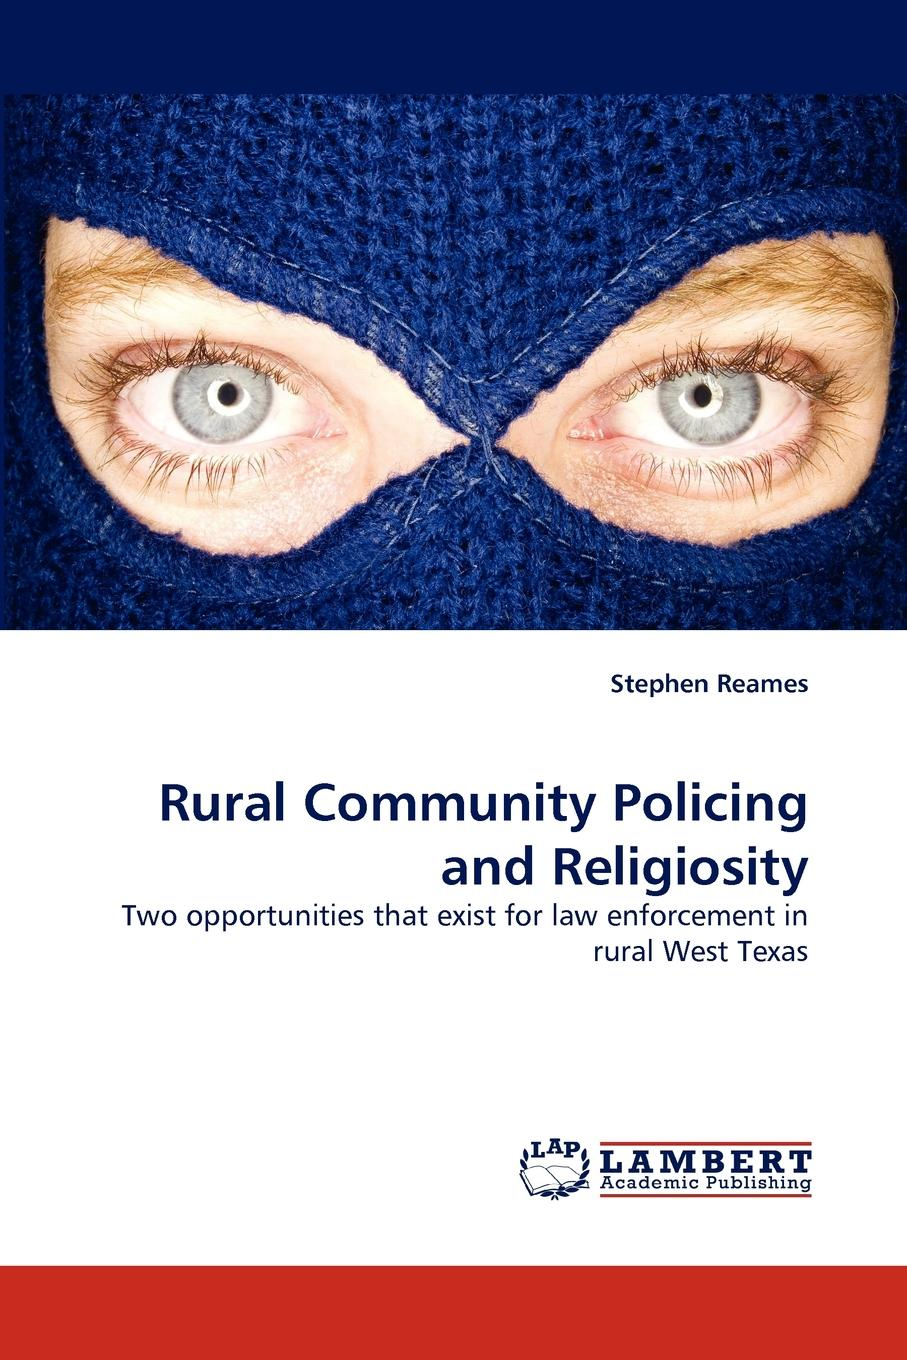 Stephen Reames Rural Community Policing and Religiosity mariam bachich community based rural heritage management in syria